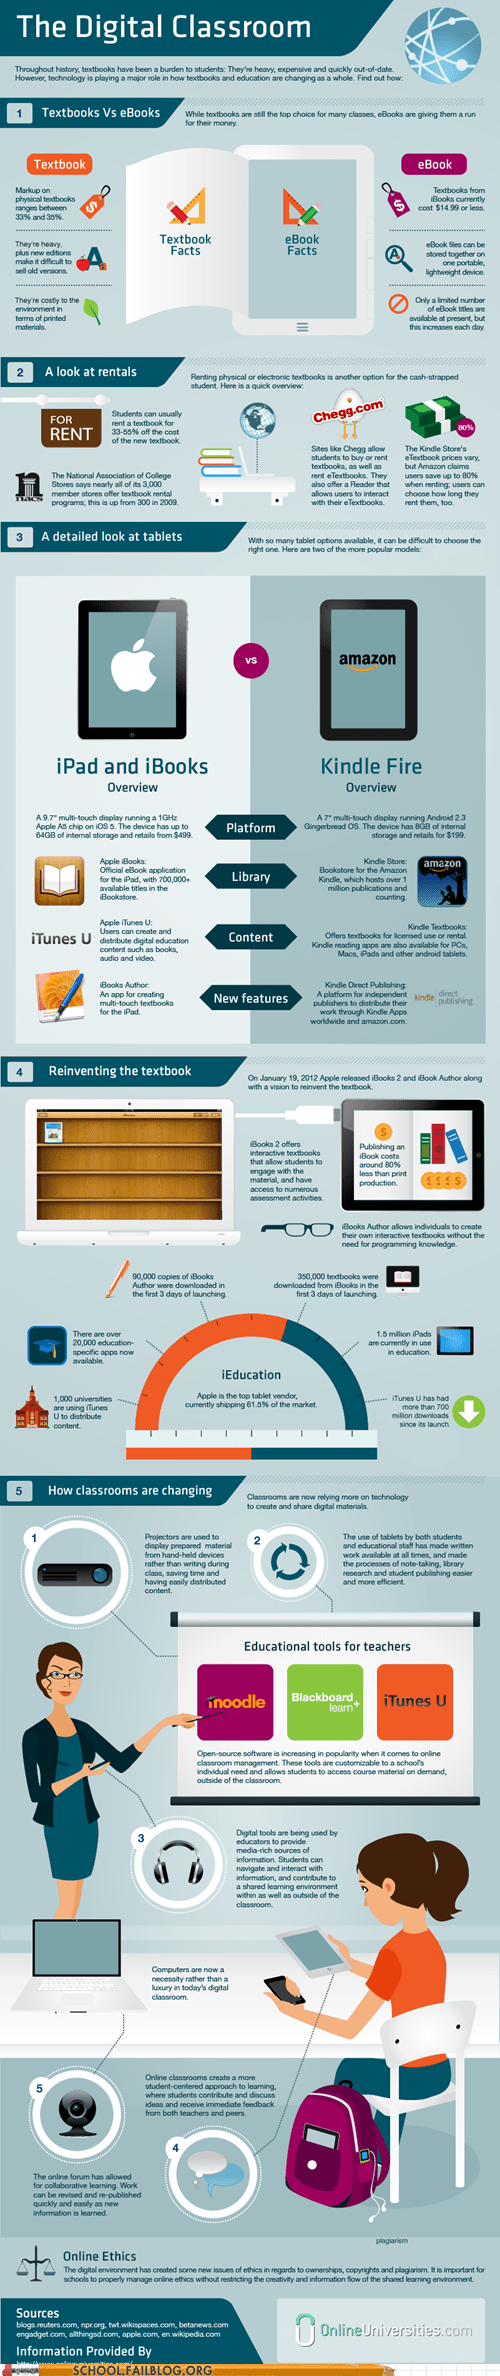 hack college infographic the digital classroom - 6040528384